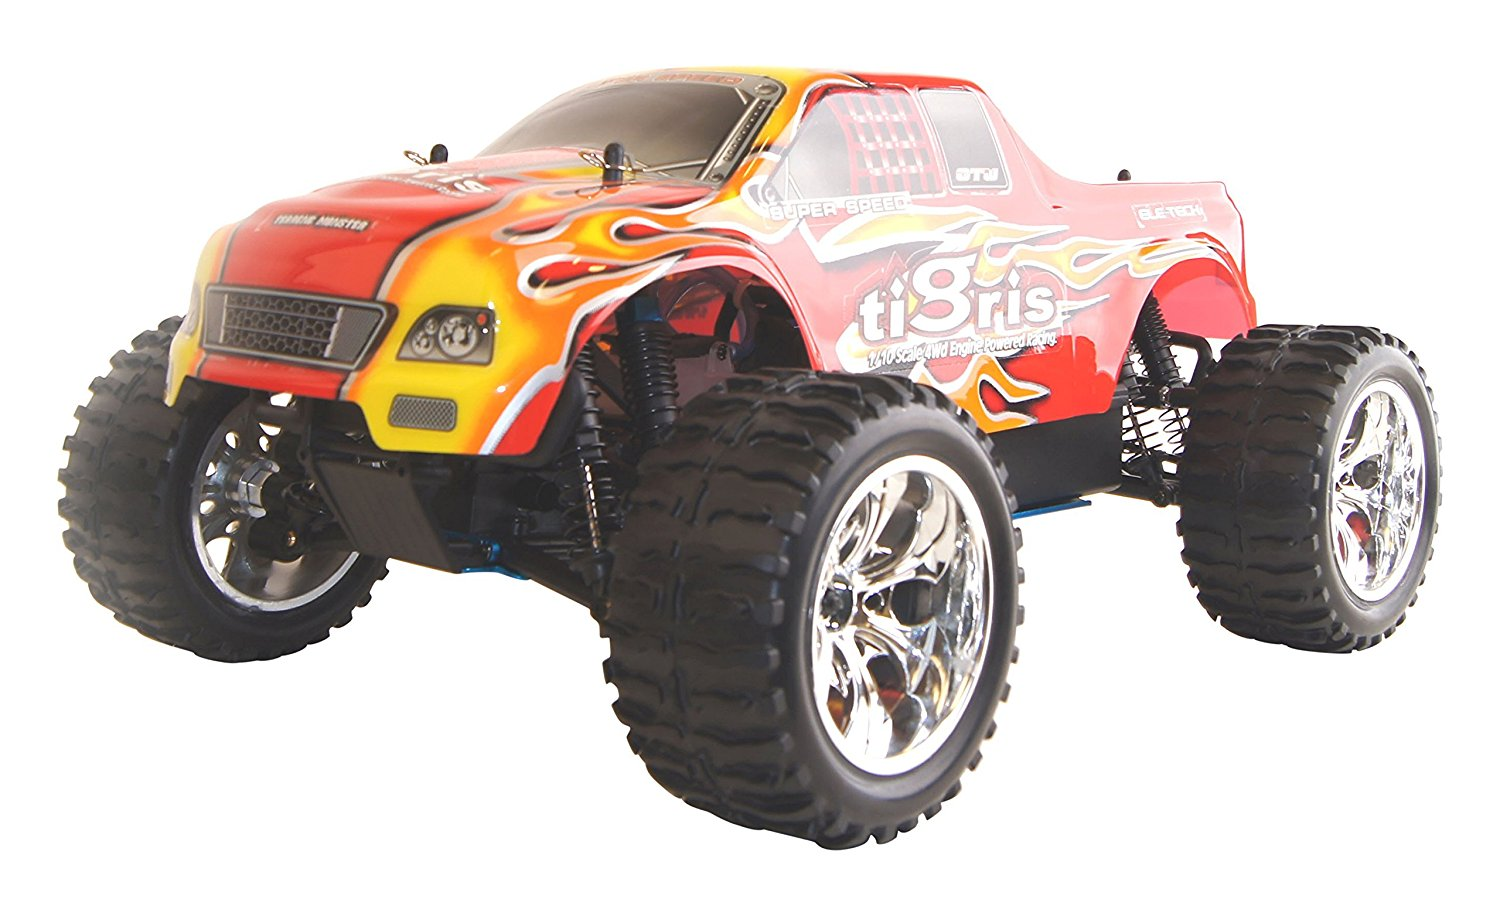 4WD Vertex 18 CXP Nitro Powered High Speed Off Road Monster Truck, Red 1/10